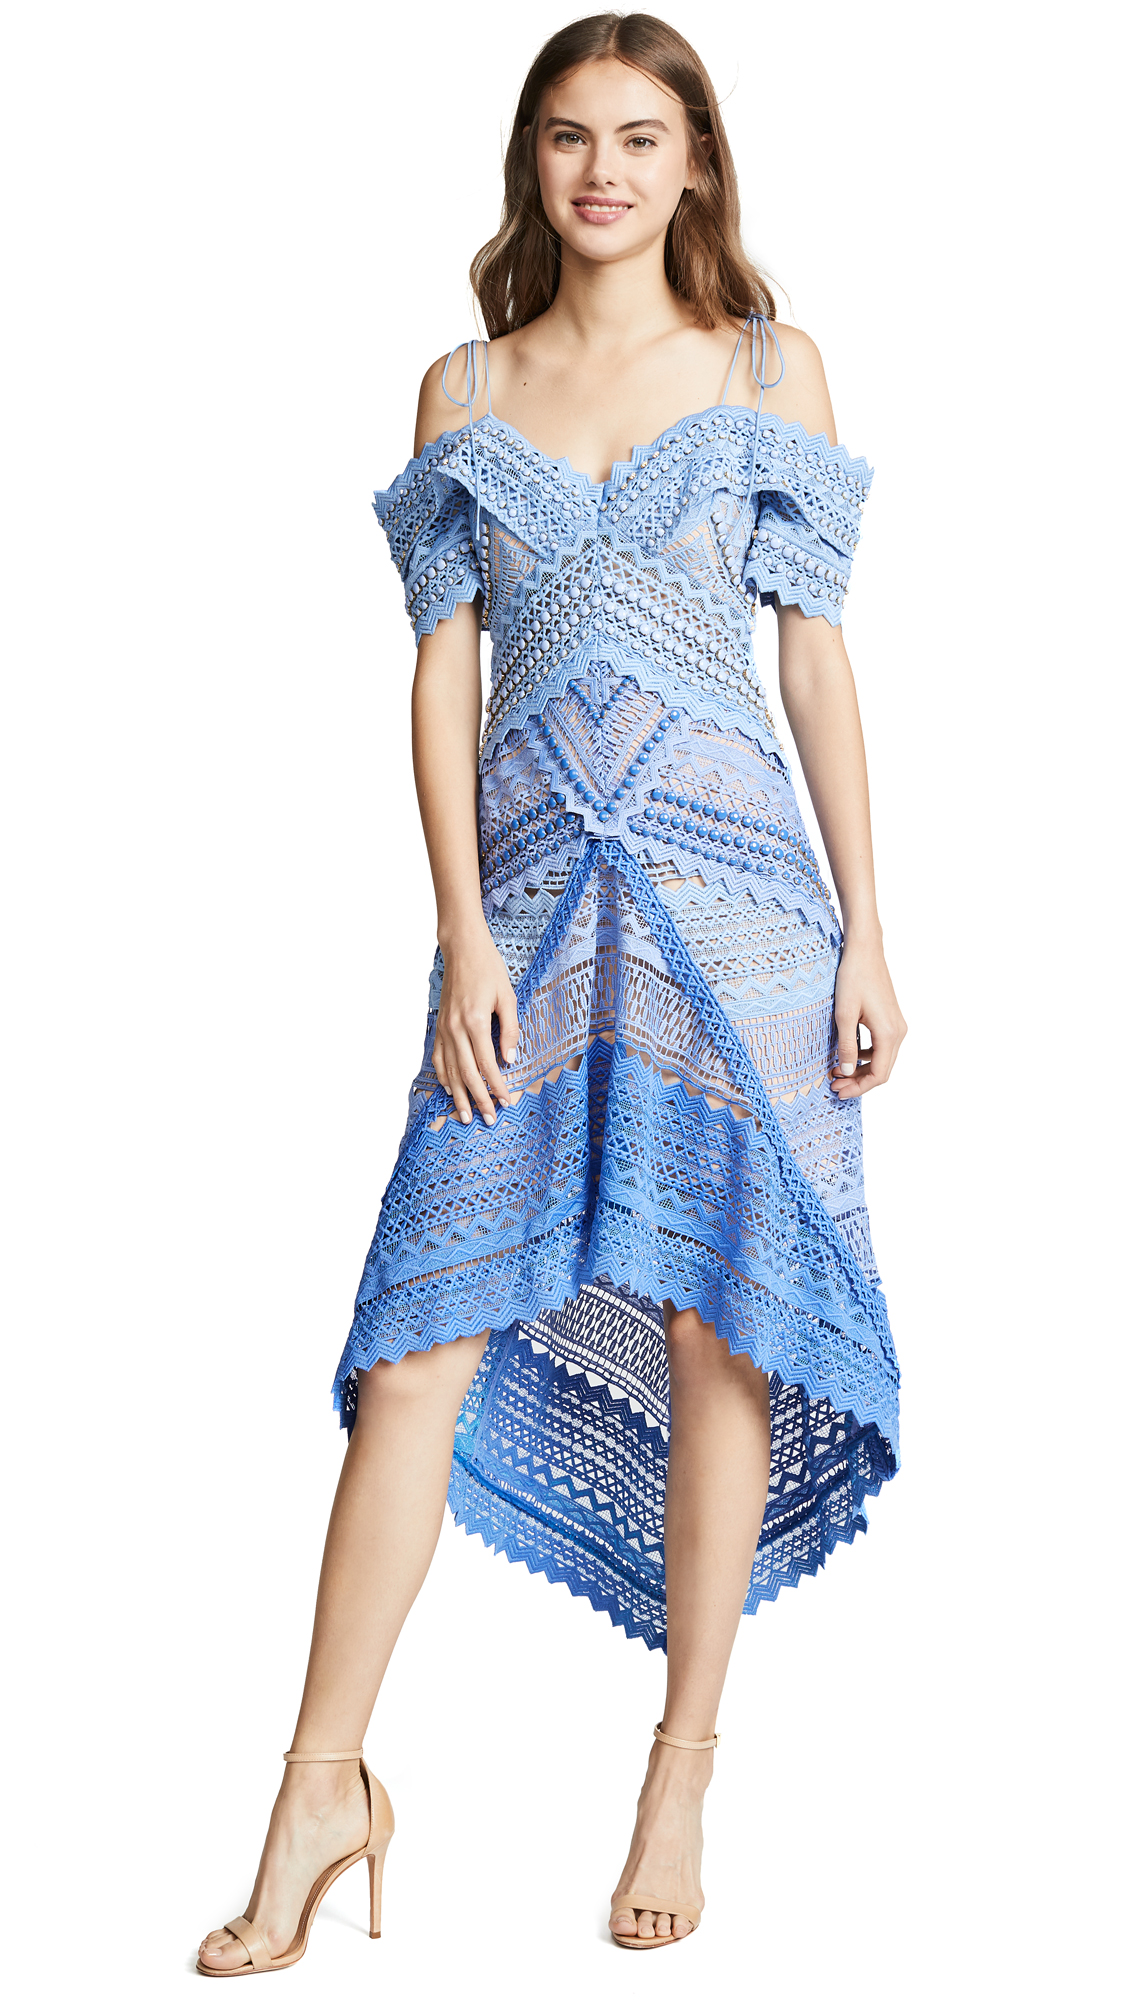 THURLEY Santorini Dress in Blue Ombre